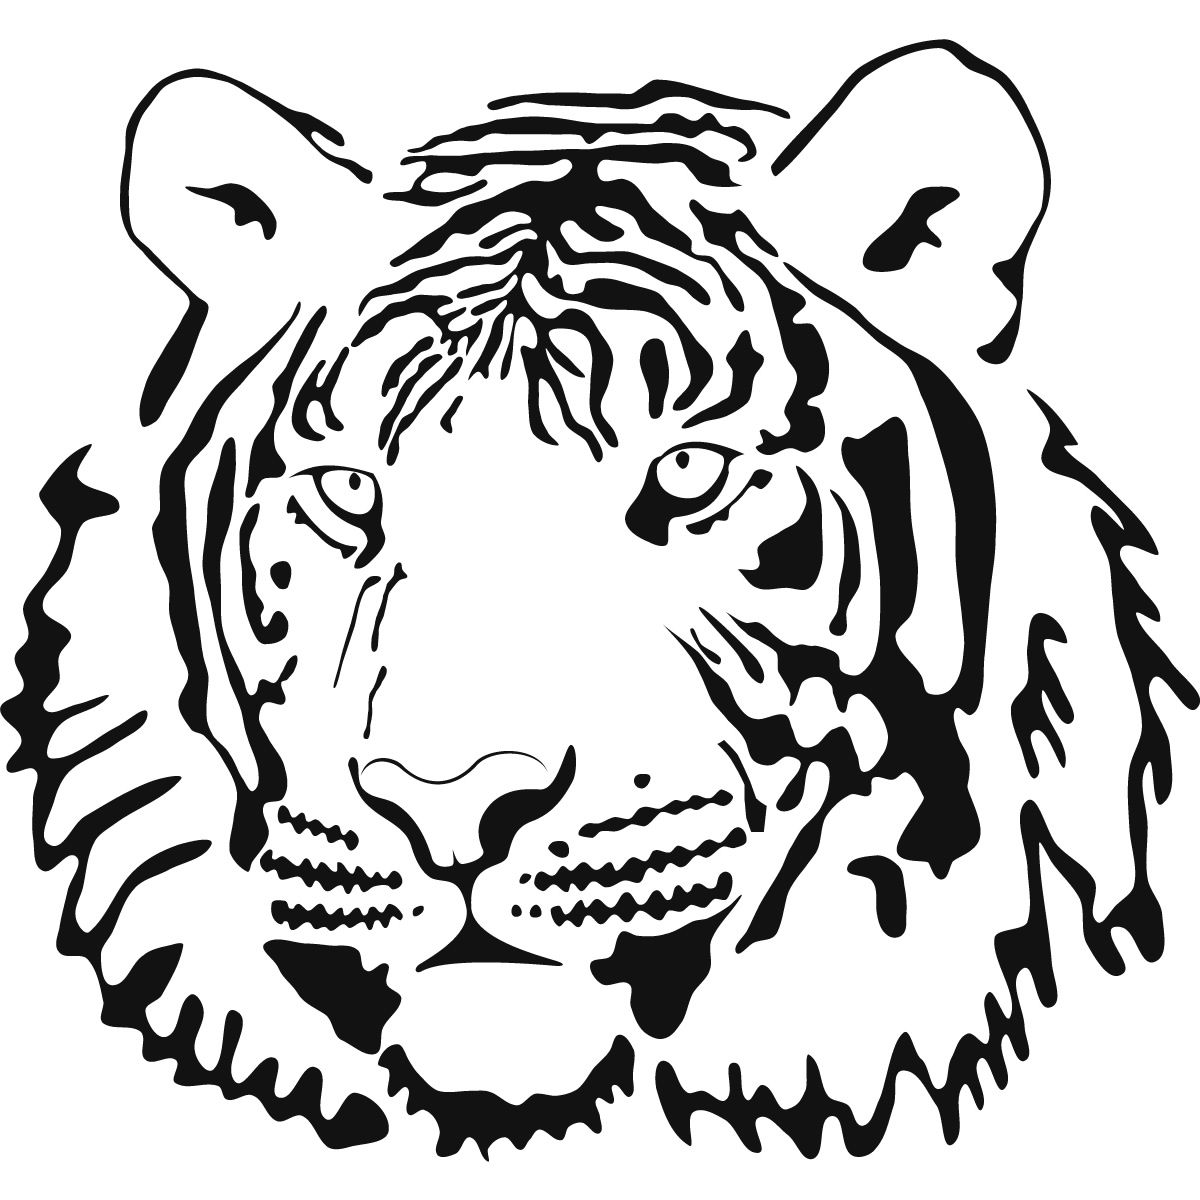 tiger face coloring page - Tiger Coloring Page